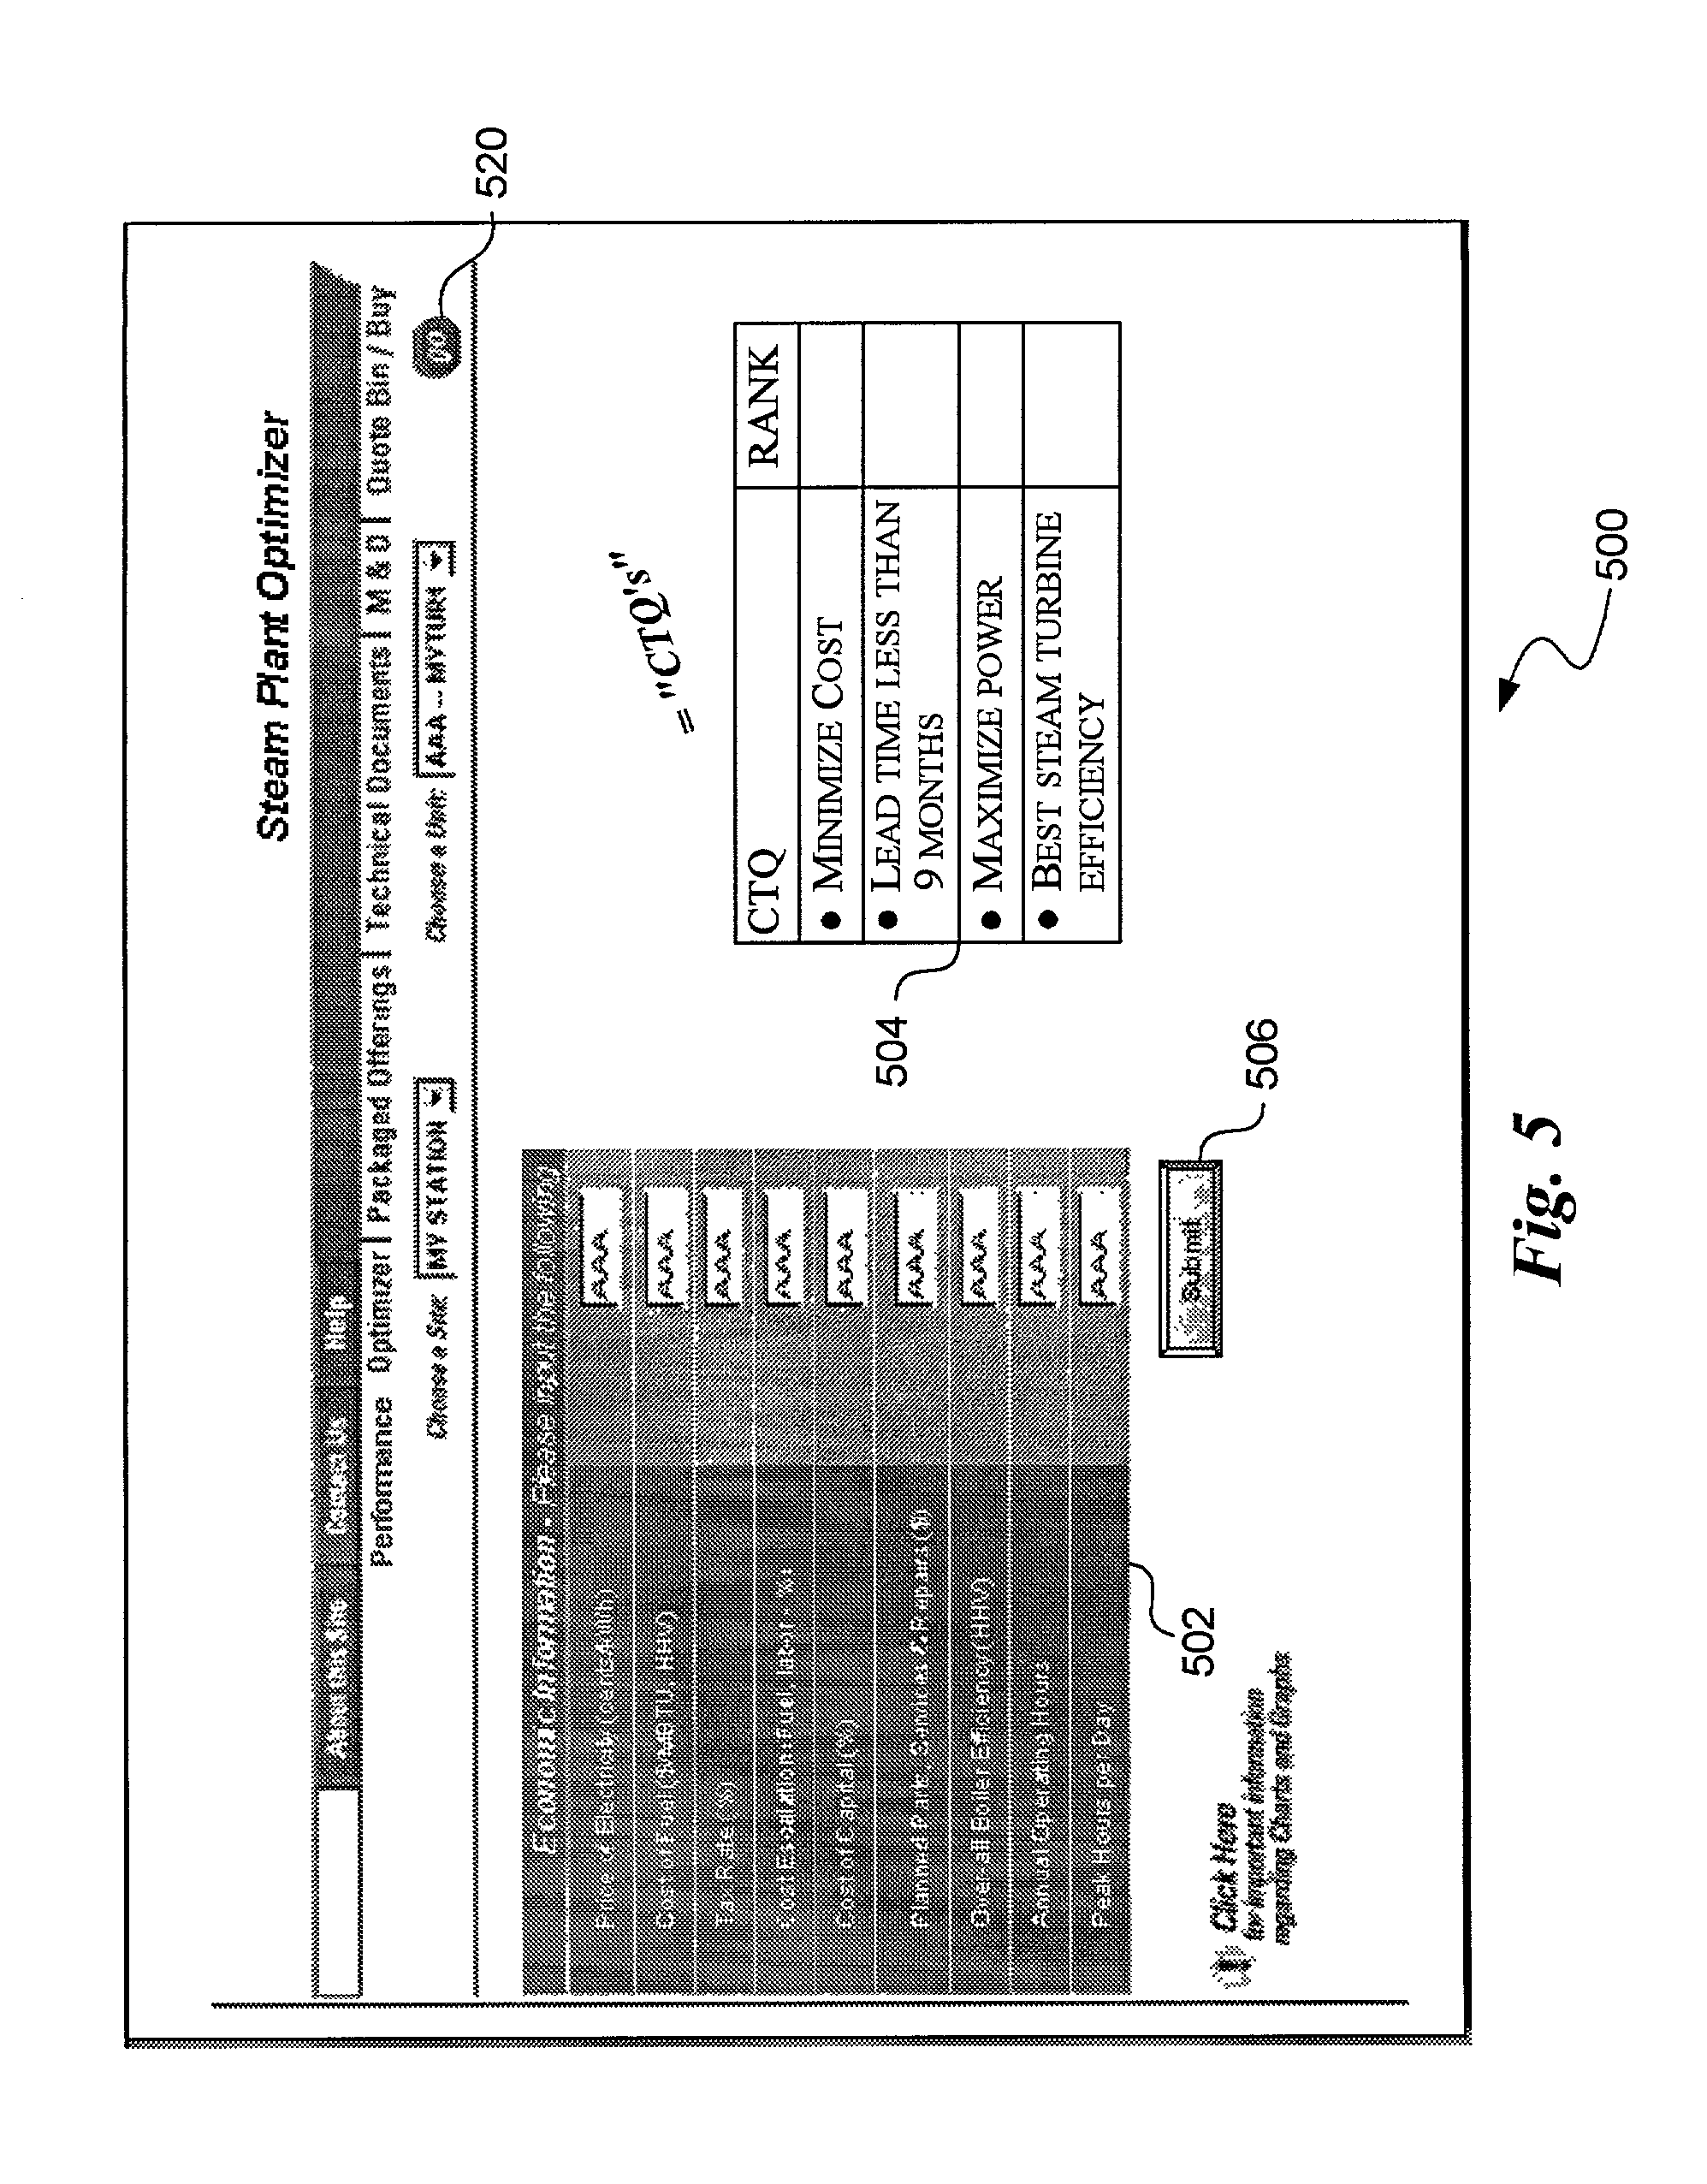 Patent US Presentation system for presenting